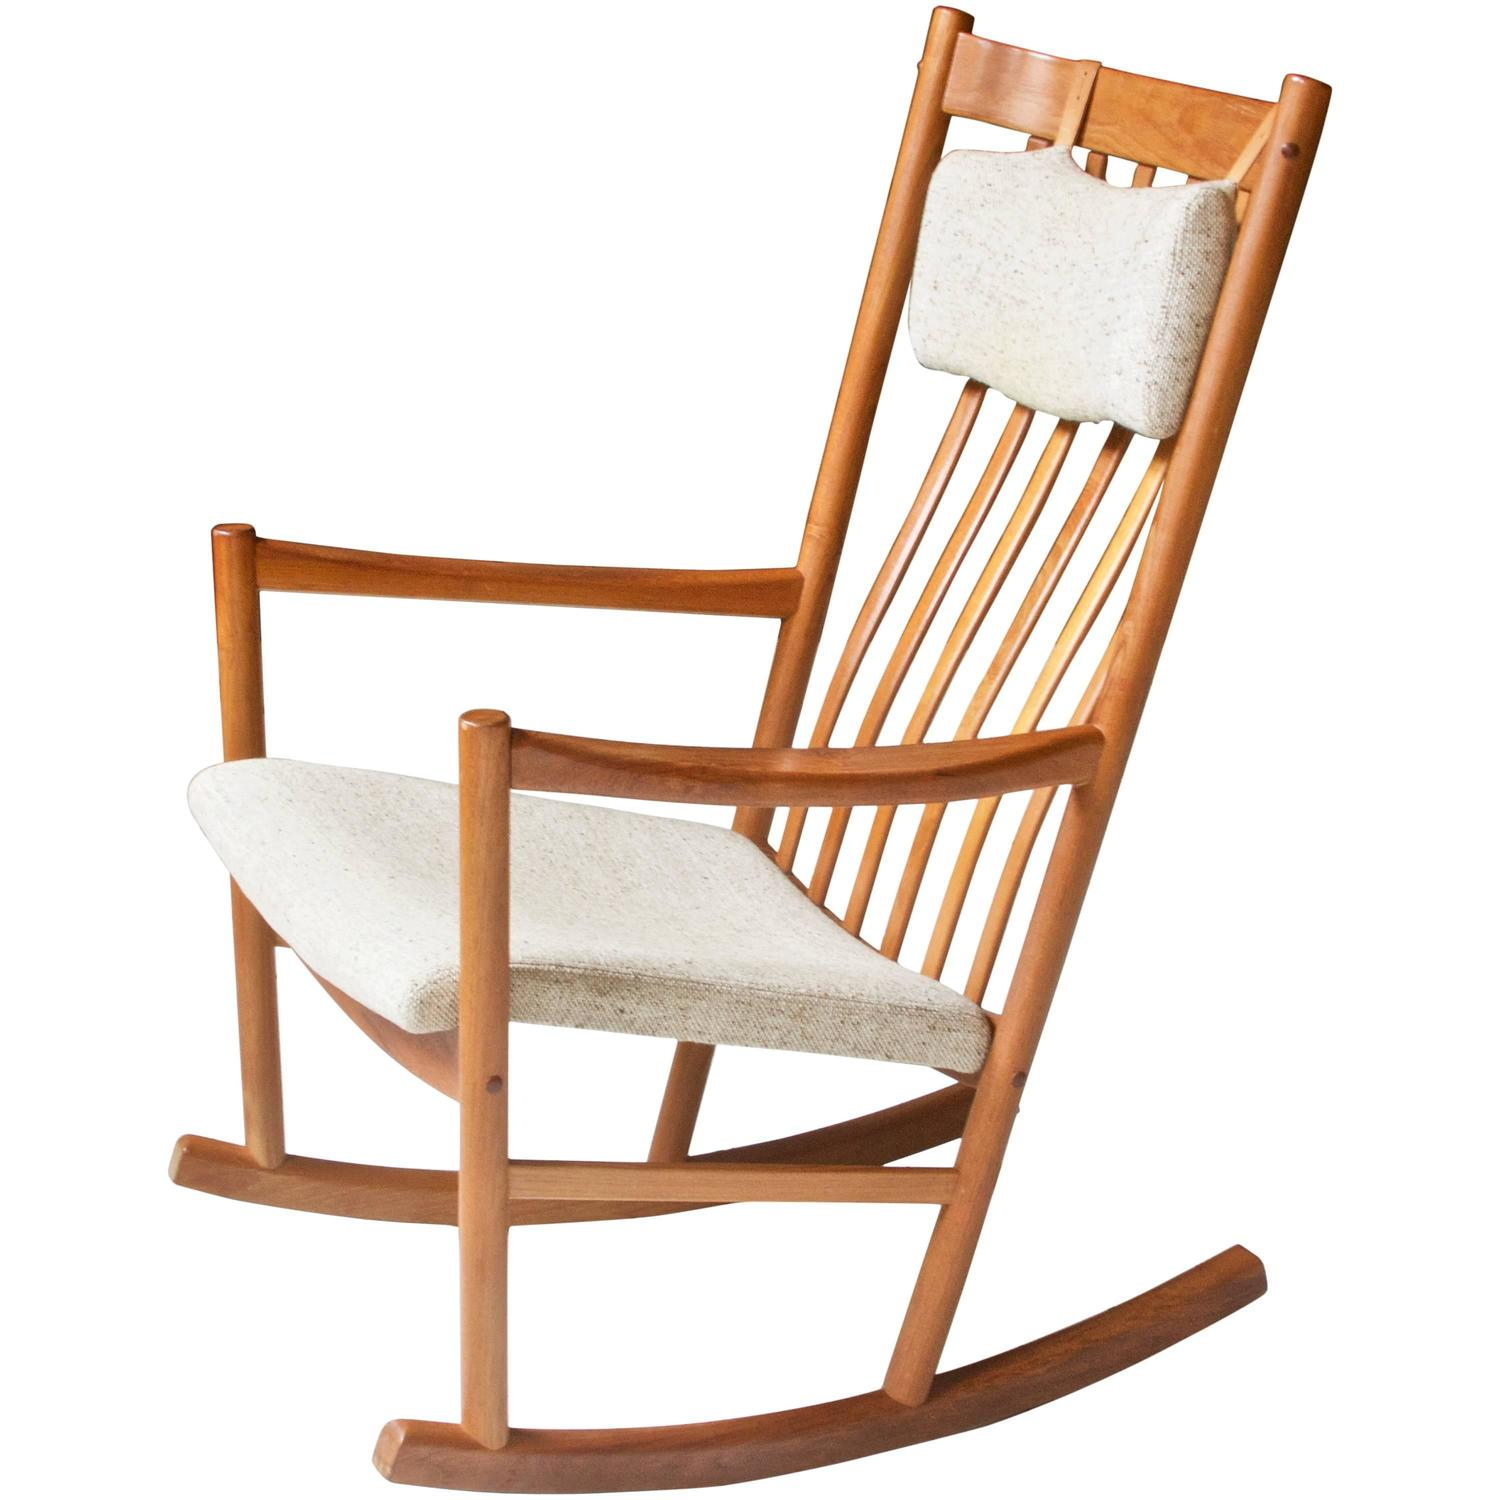 1960s Rocking Chairs 142 For Sale at 1stdibs